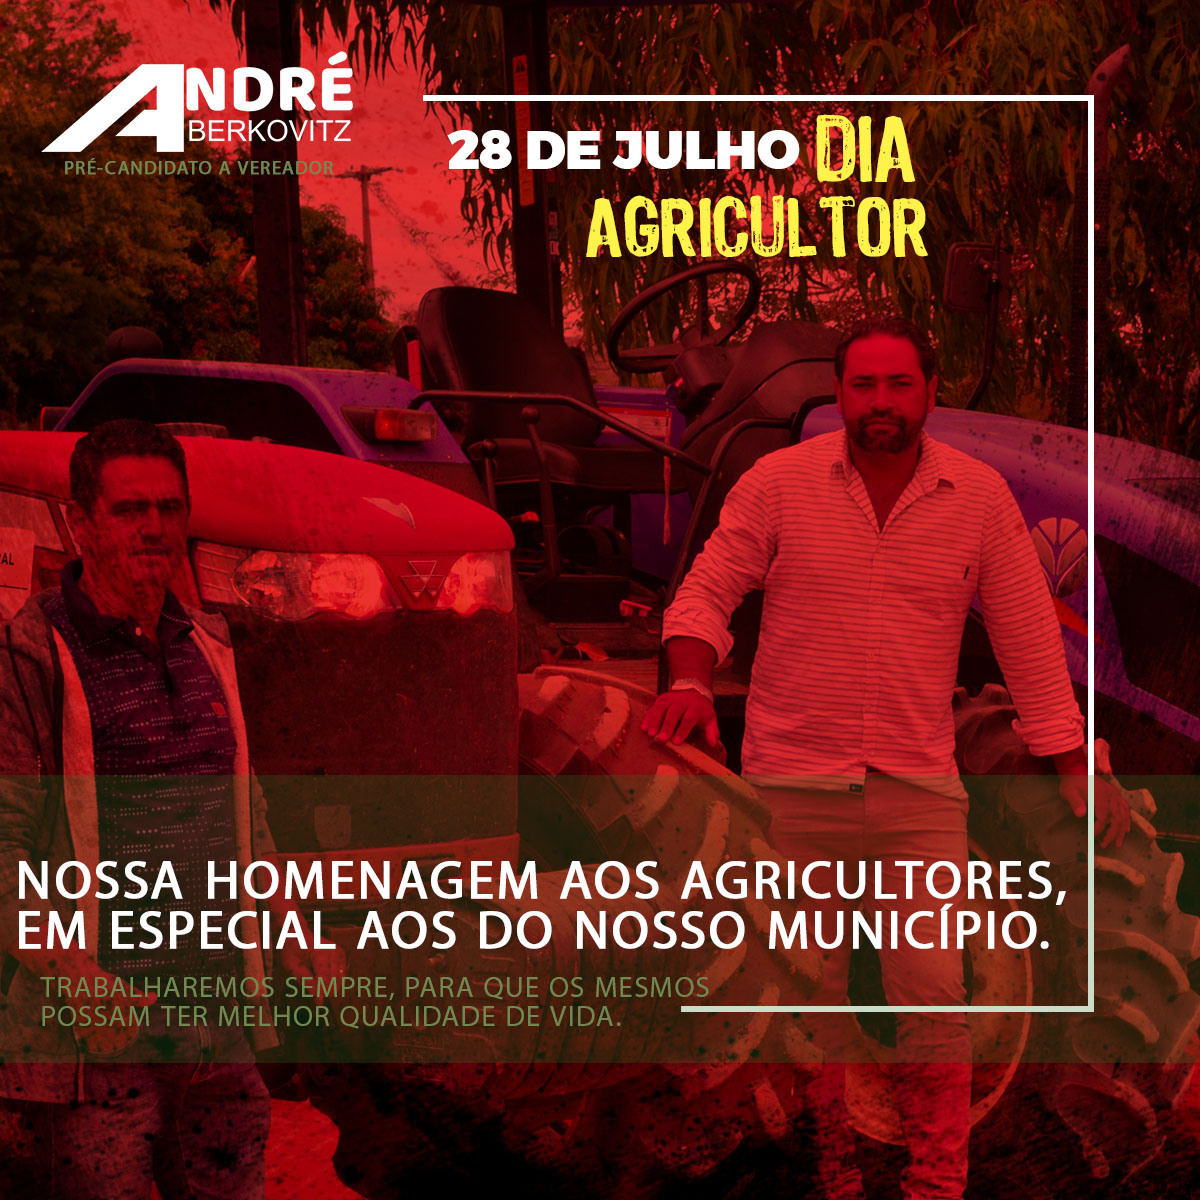 Homenagem do vereador André Berkovitz ao Dia do Agricultor